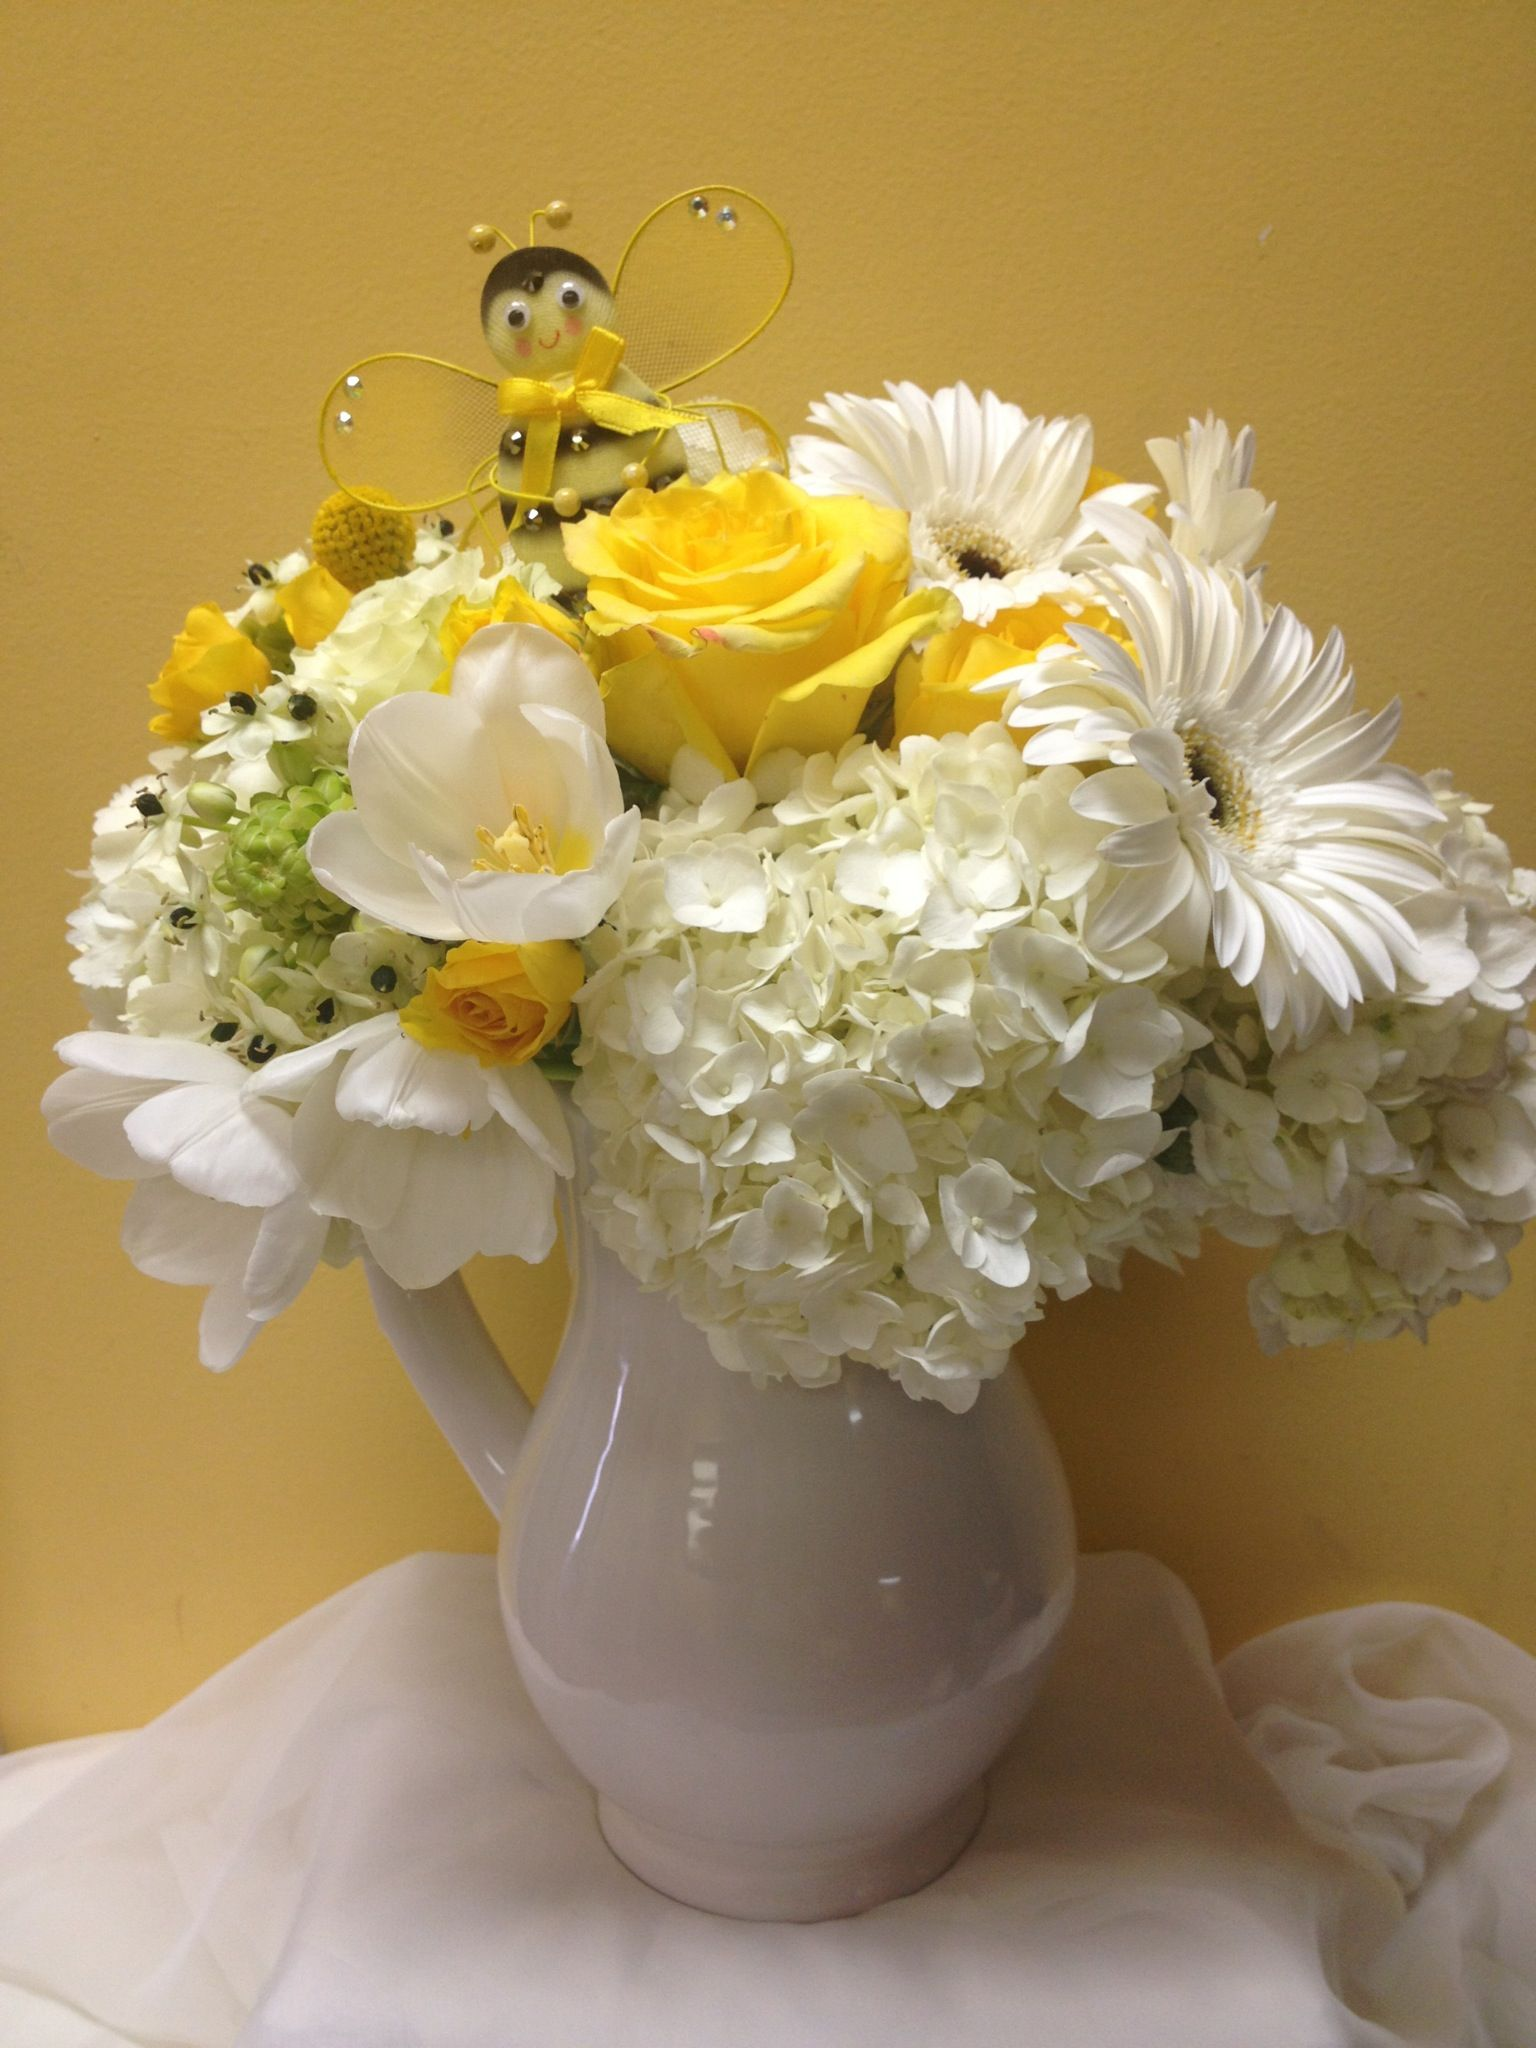 Bee theme centerpieces by Dezign Shop (With images) Bee